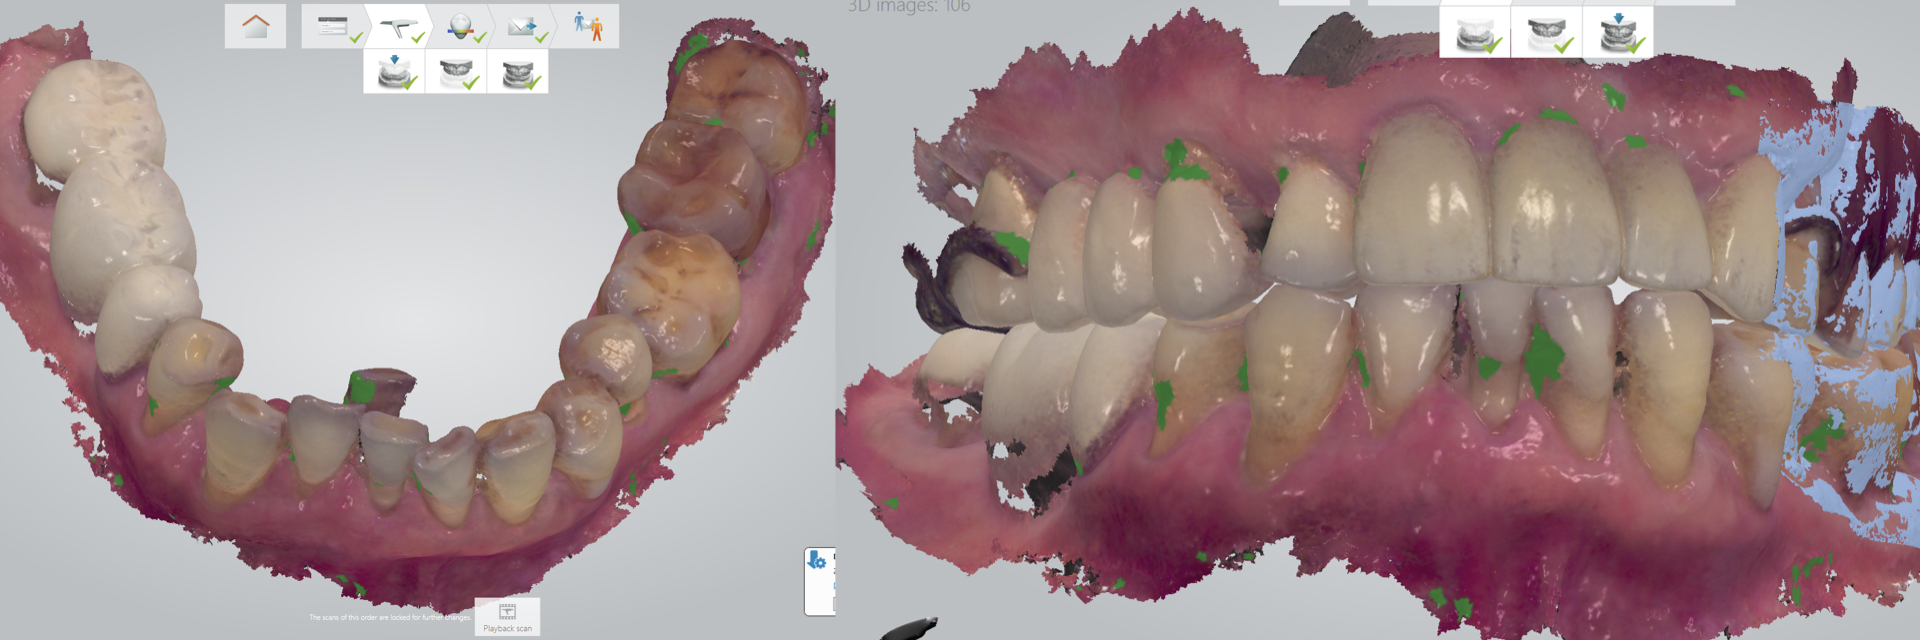 1_Digital-Workflow-for-Full-Arch-Implant-Supported-Teeth-Chrome-GuidedSmile-Kazemi-Oral-Surgery-Bethesda-Implant-Dentist.006